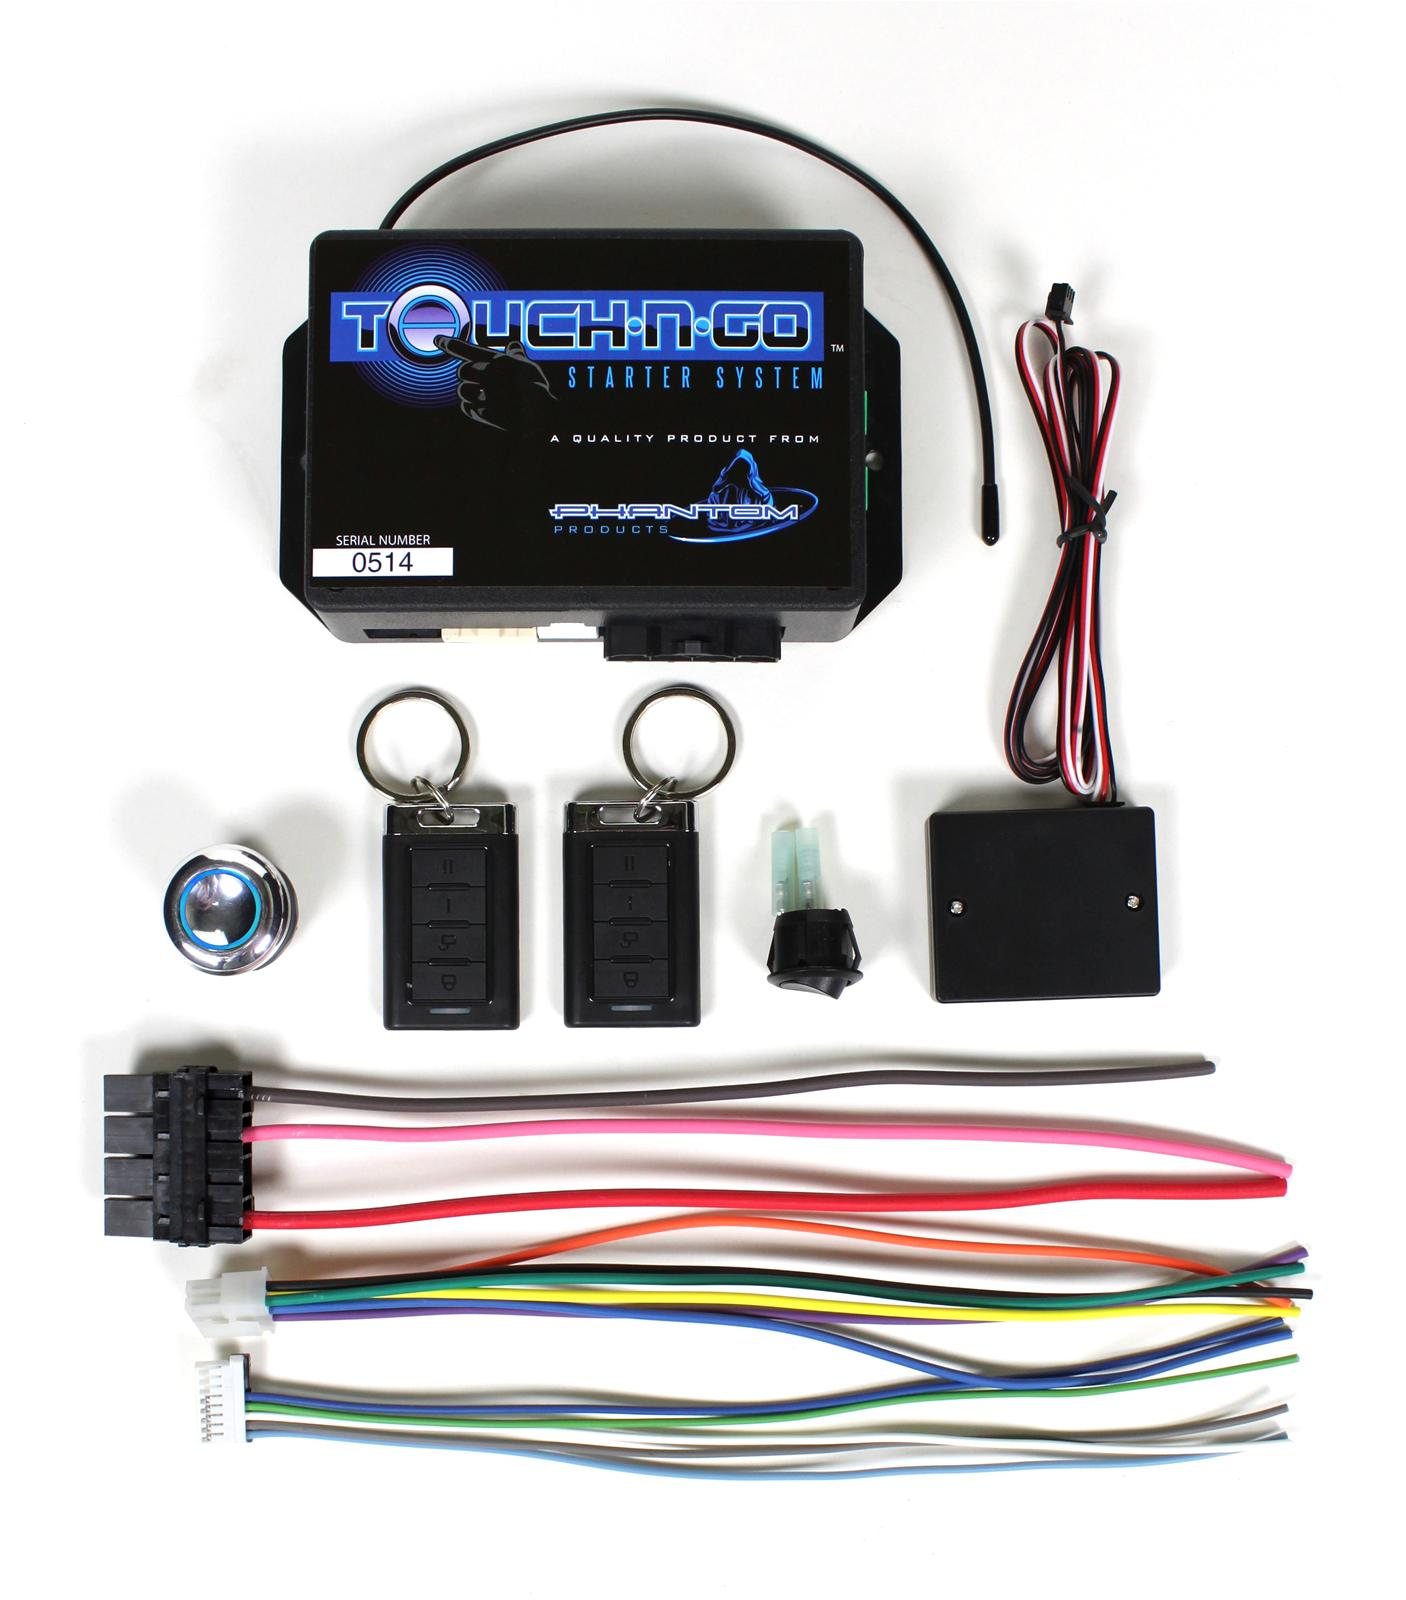 hight resolution of ididit touch n go keyless ignition systems 2600670100 free shipping on orders over 99 at summit racing